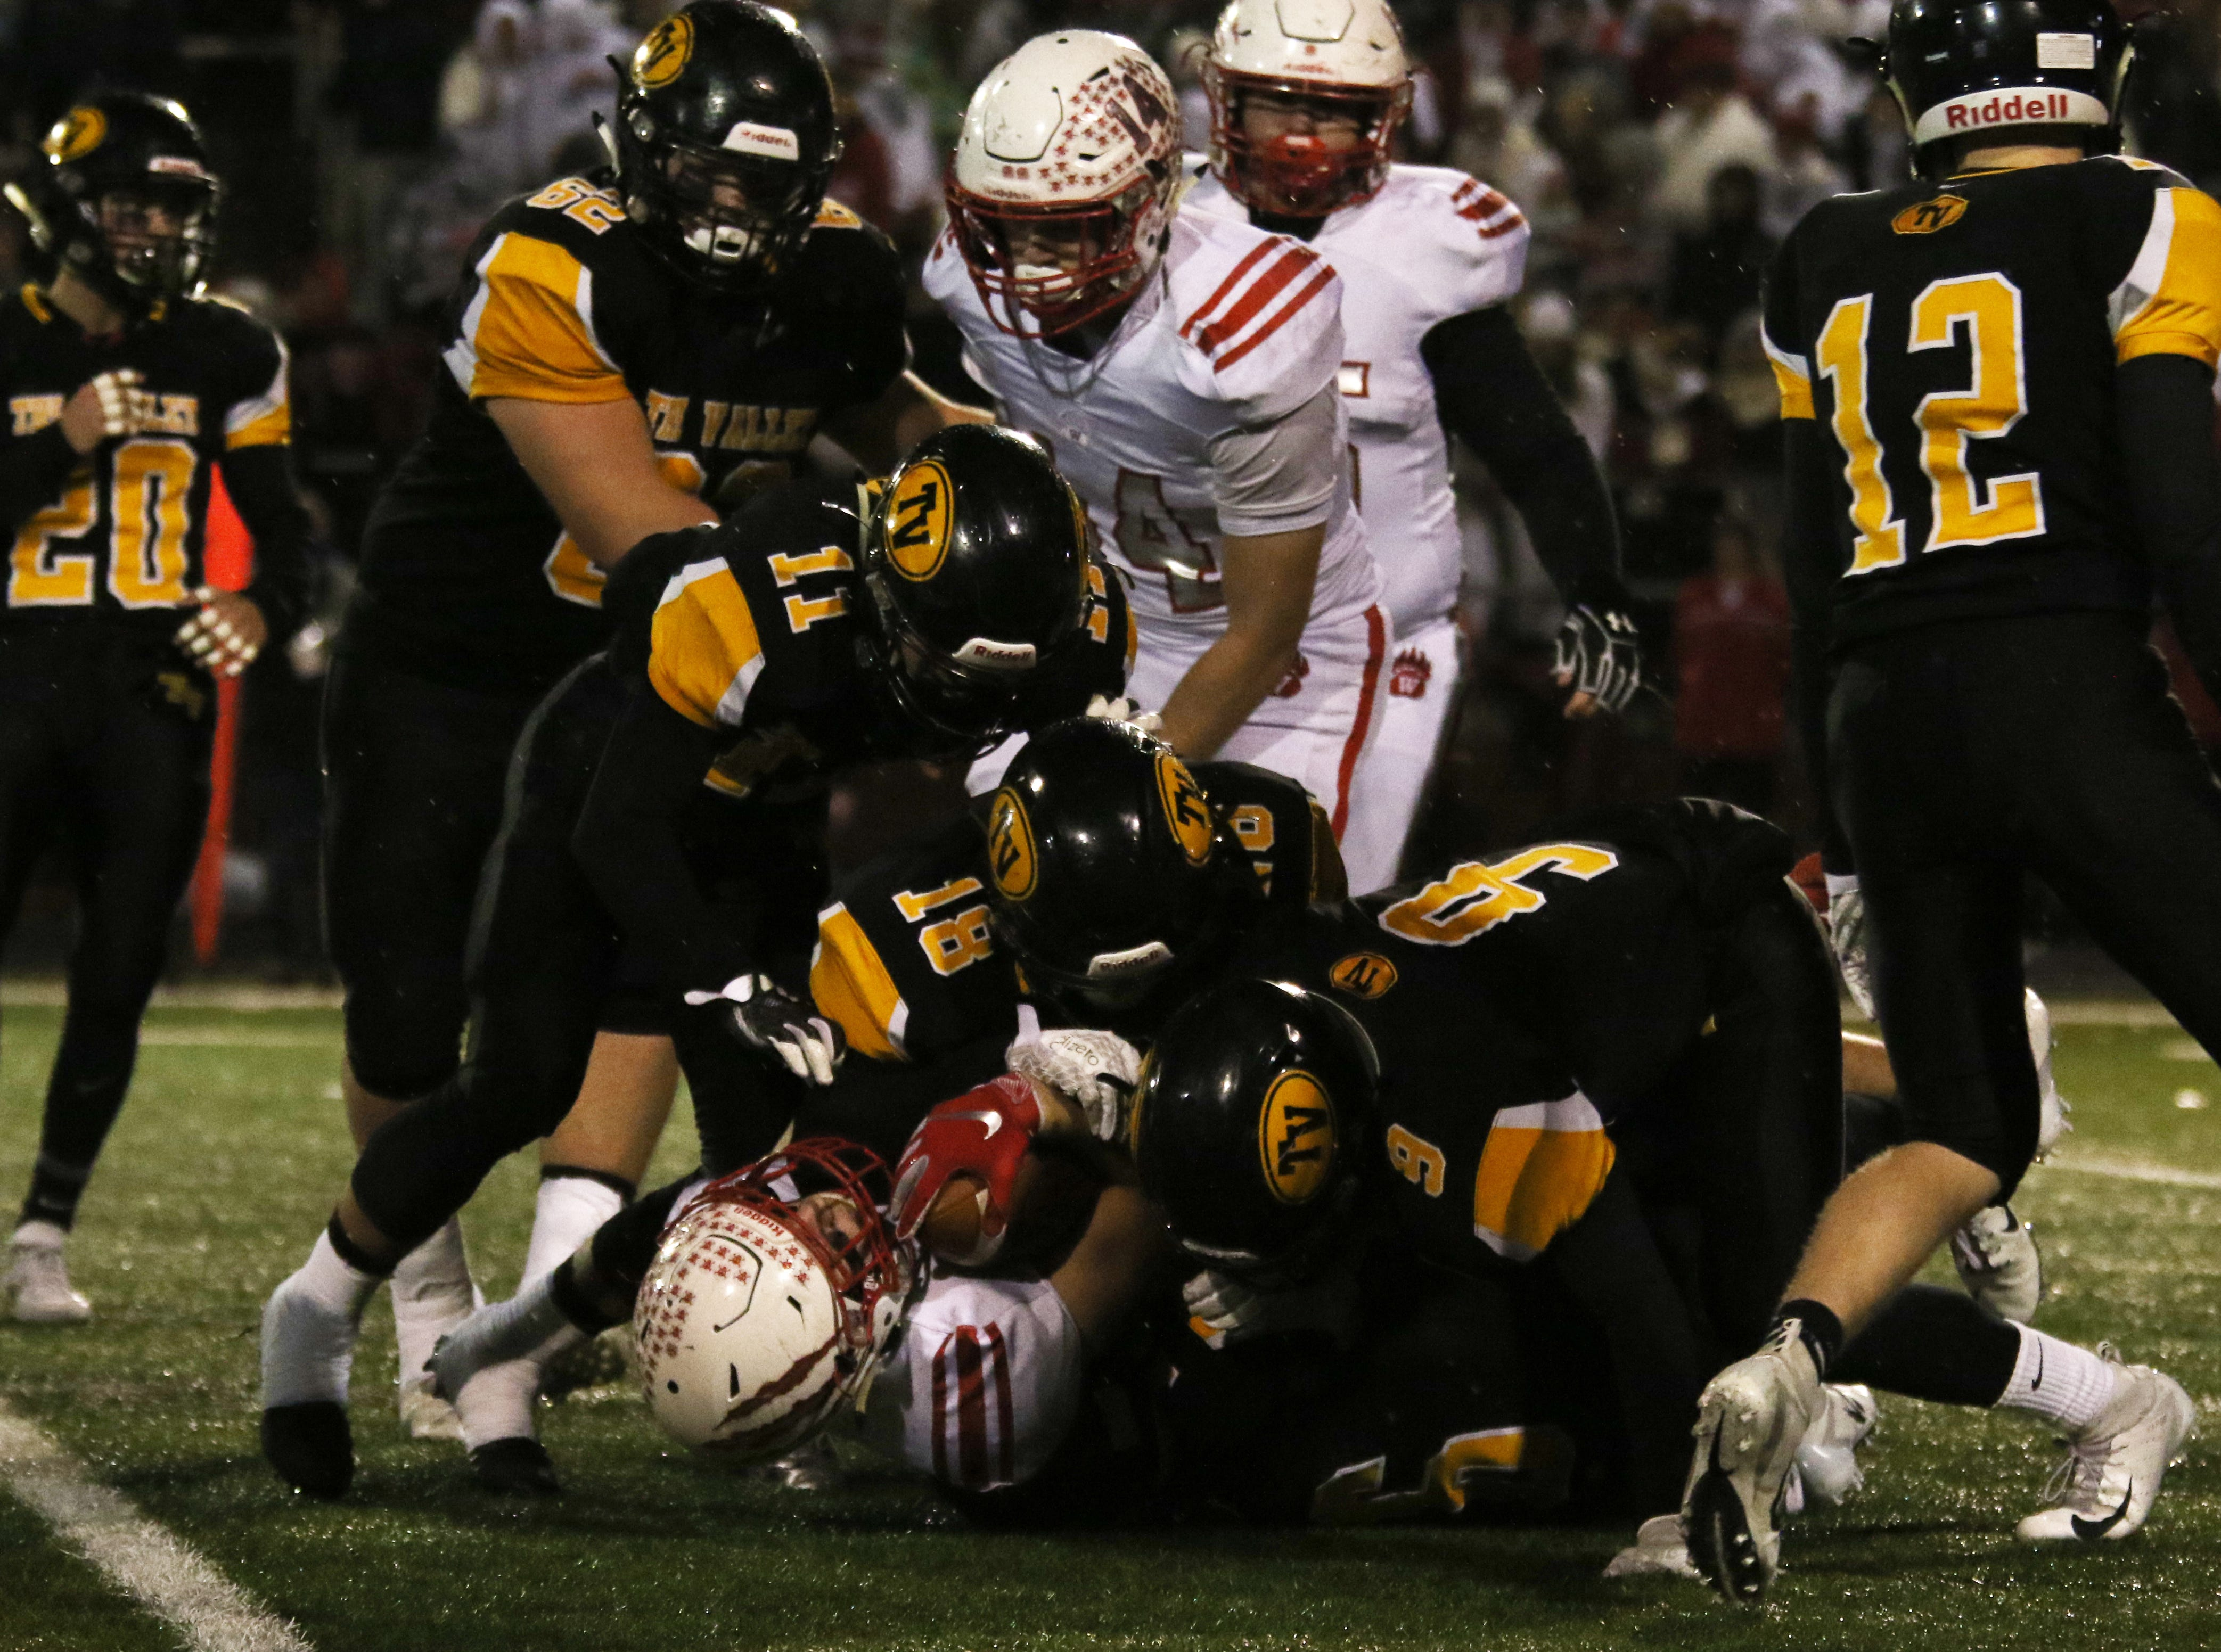 The Tri-Valley defense brings down a Wadsworth ball carrier.